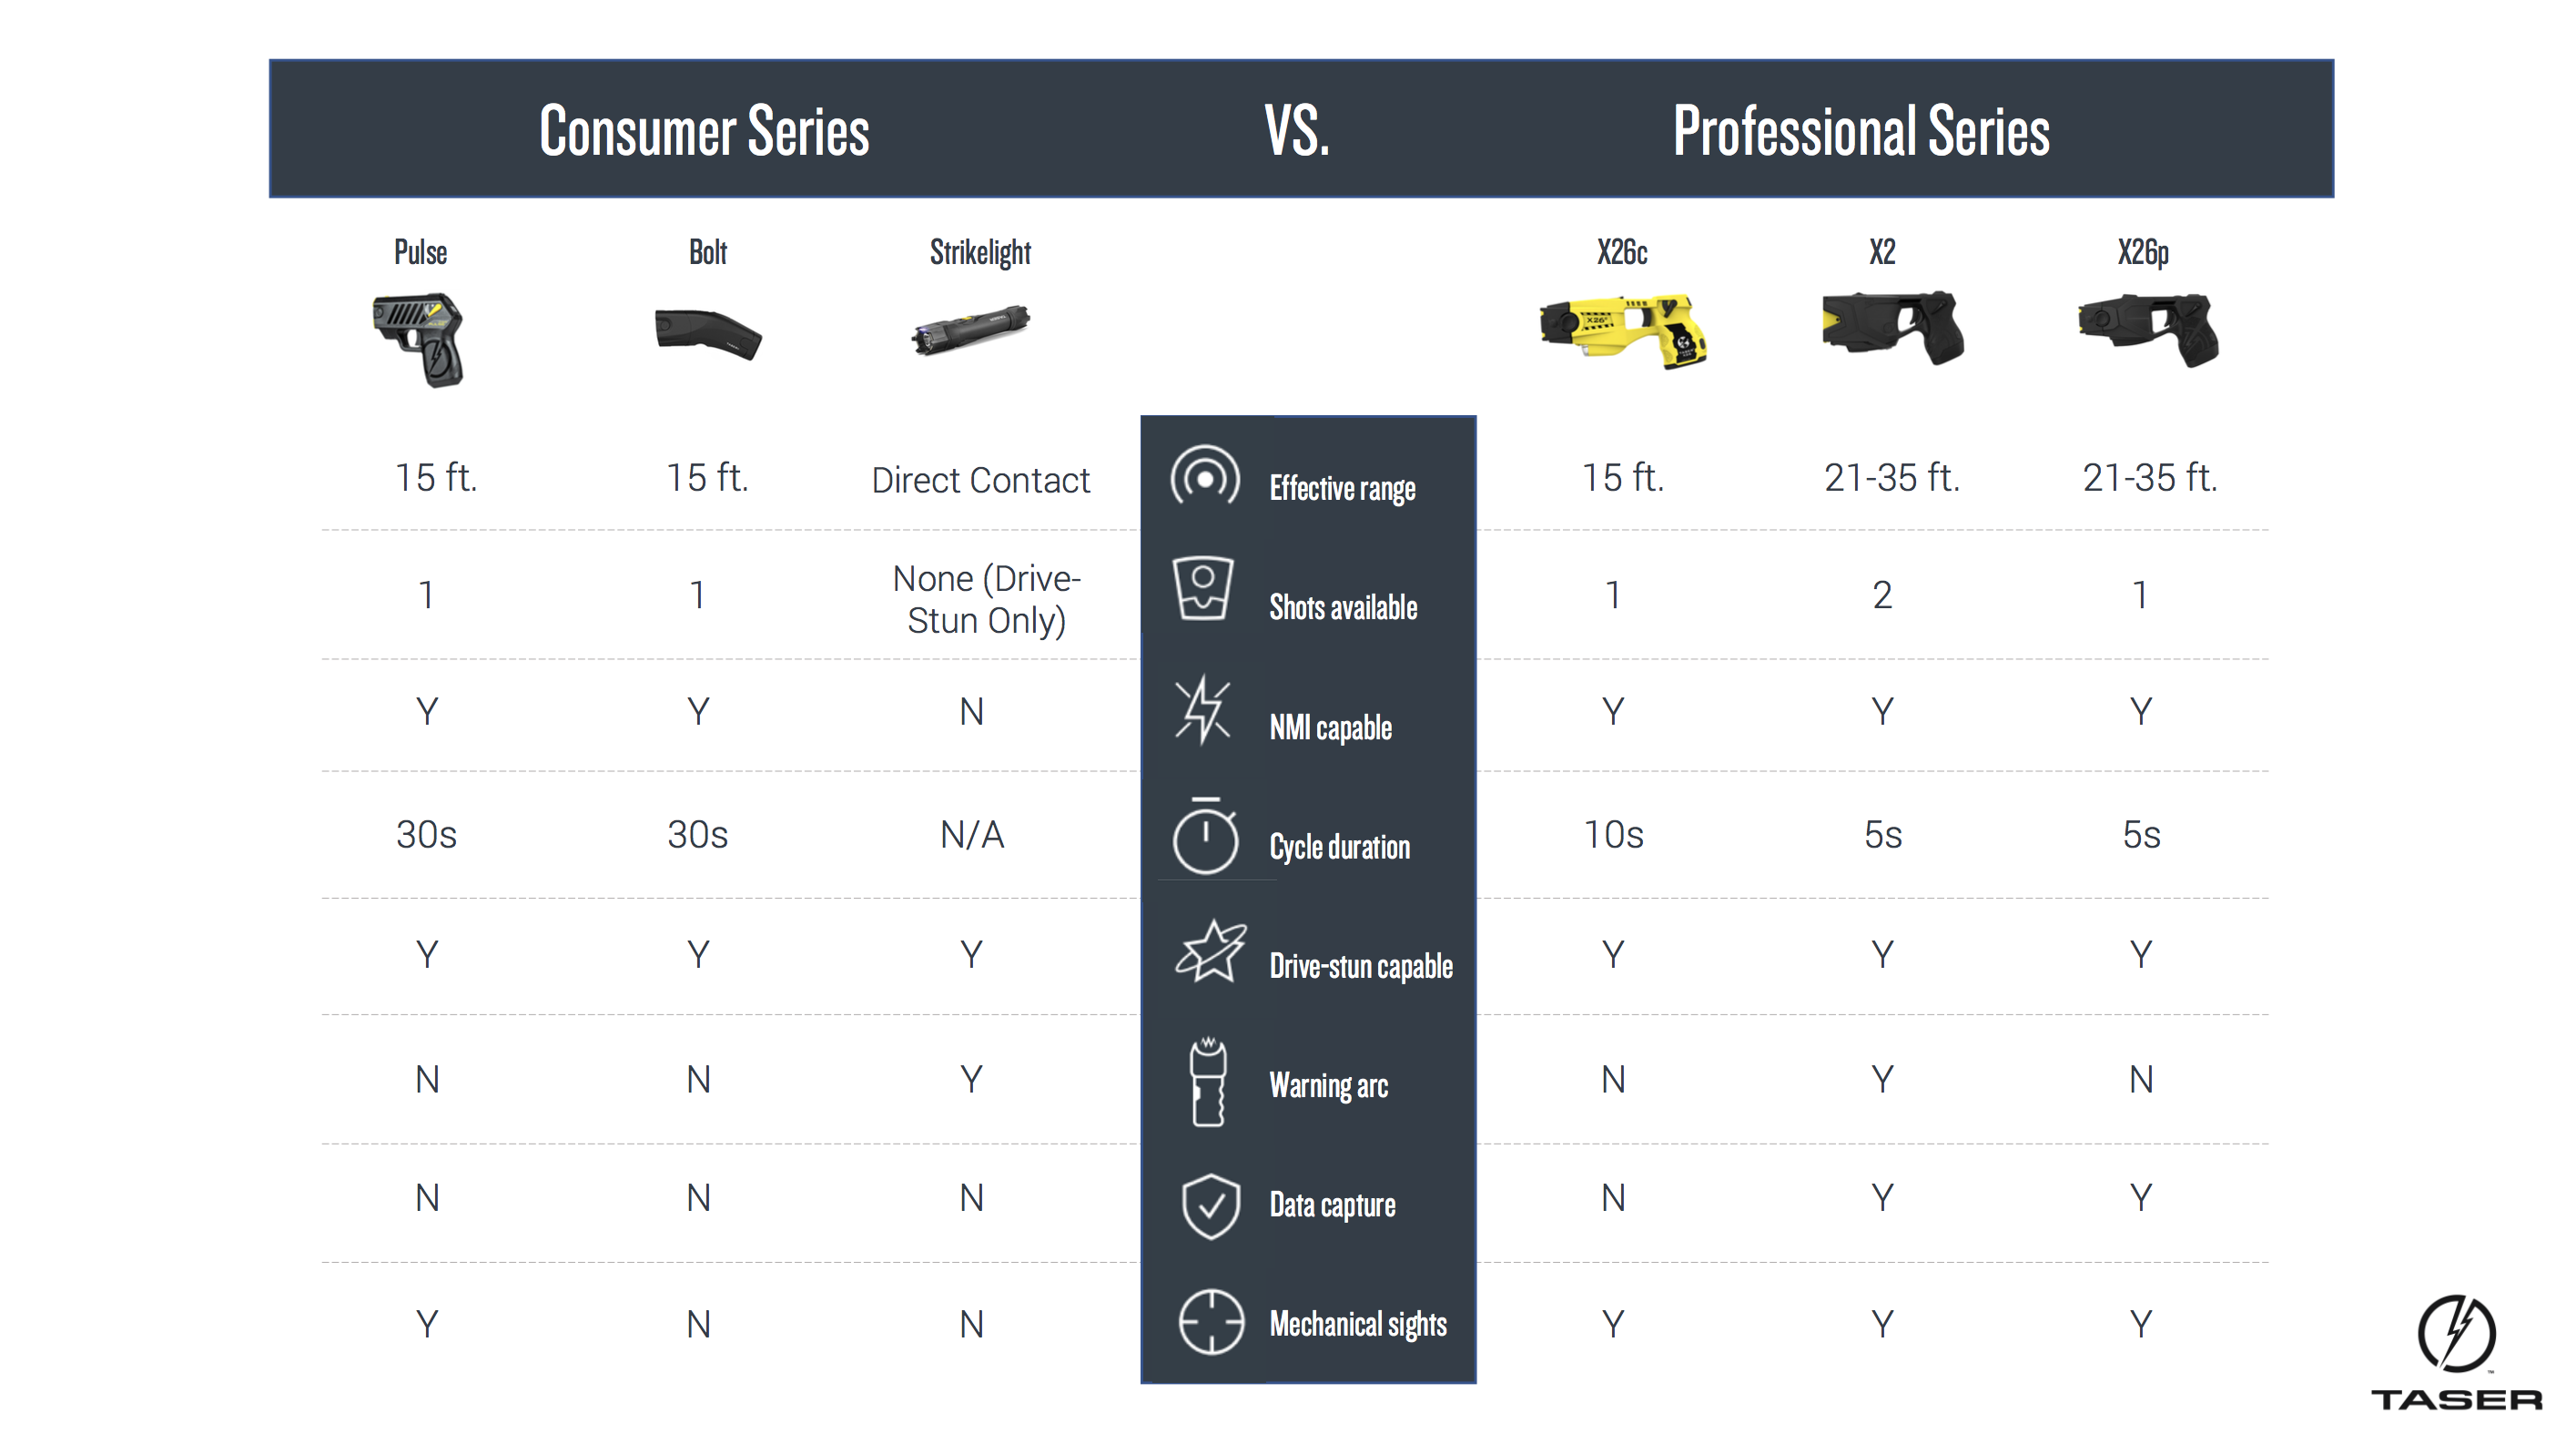 TASER Professional Series vs. TASER Consumer Series